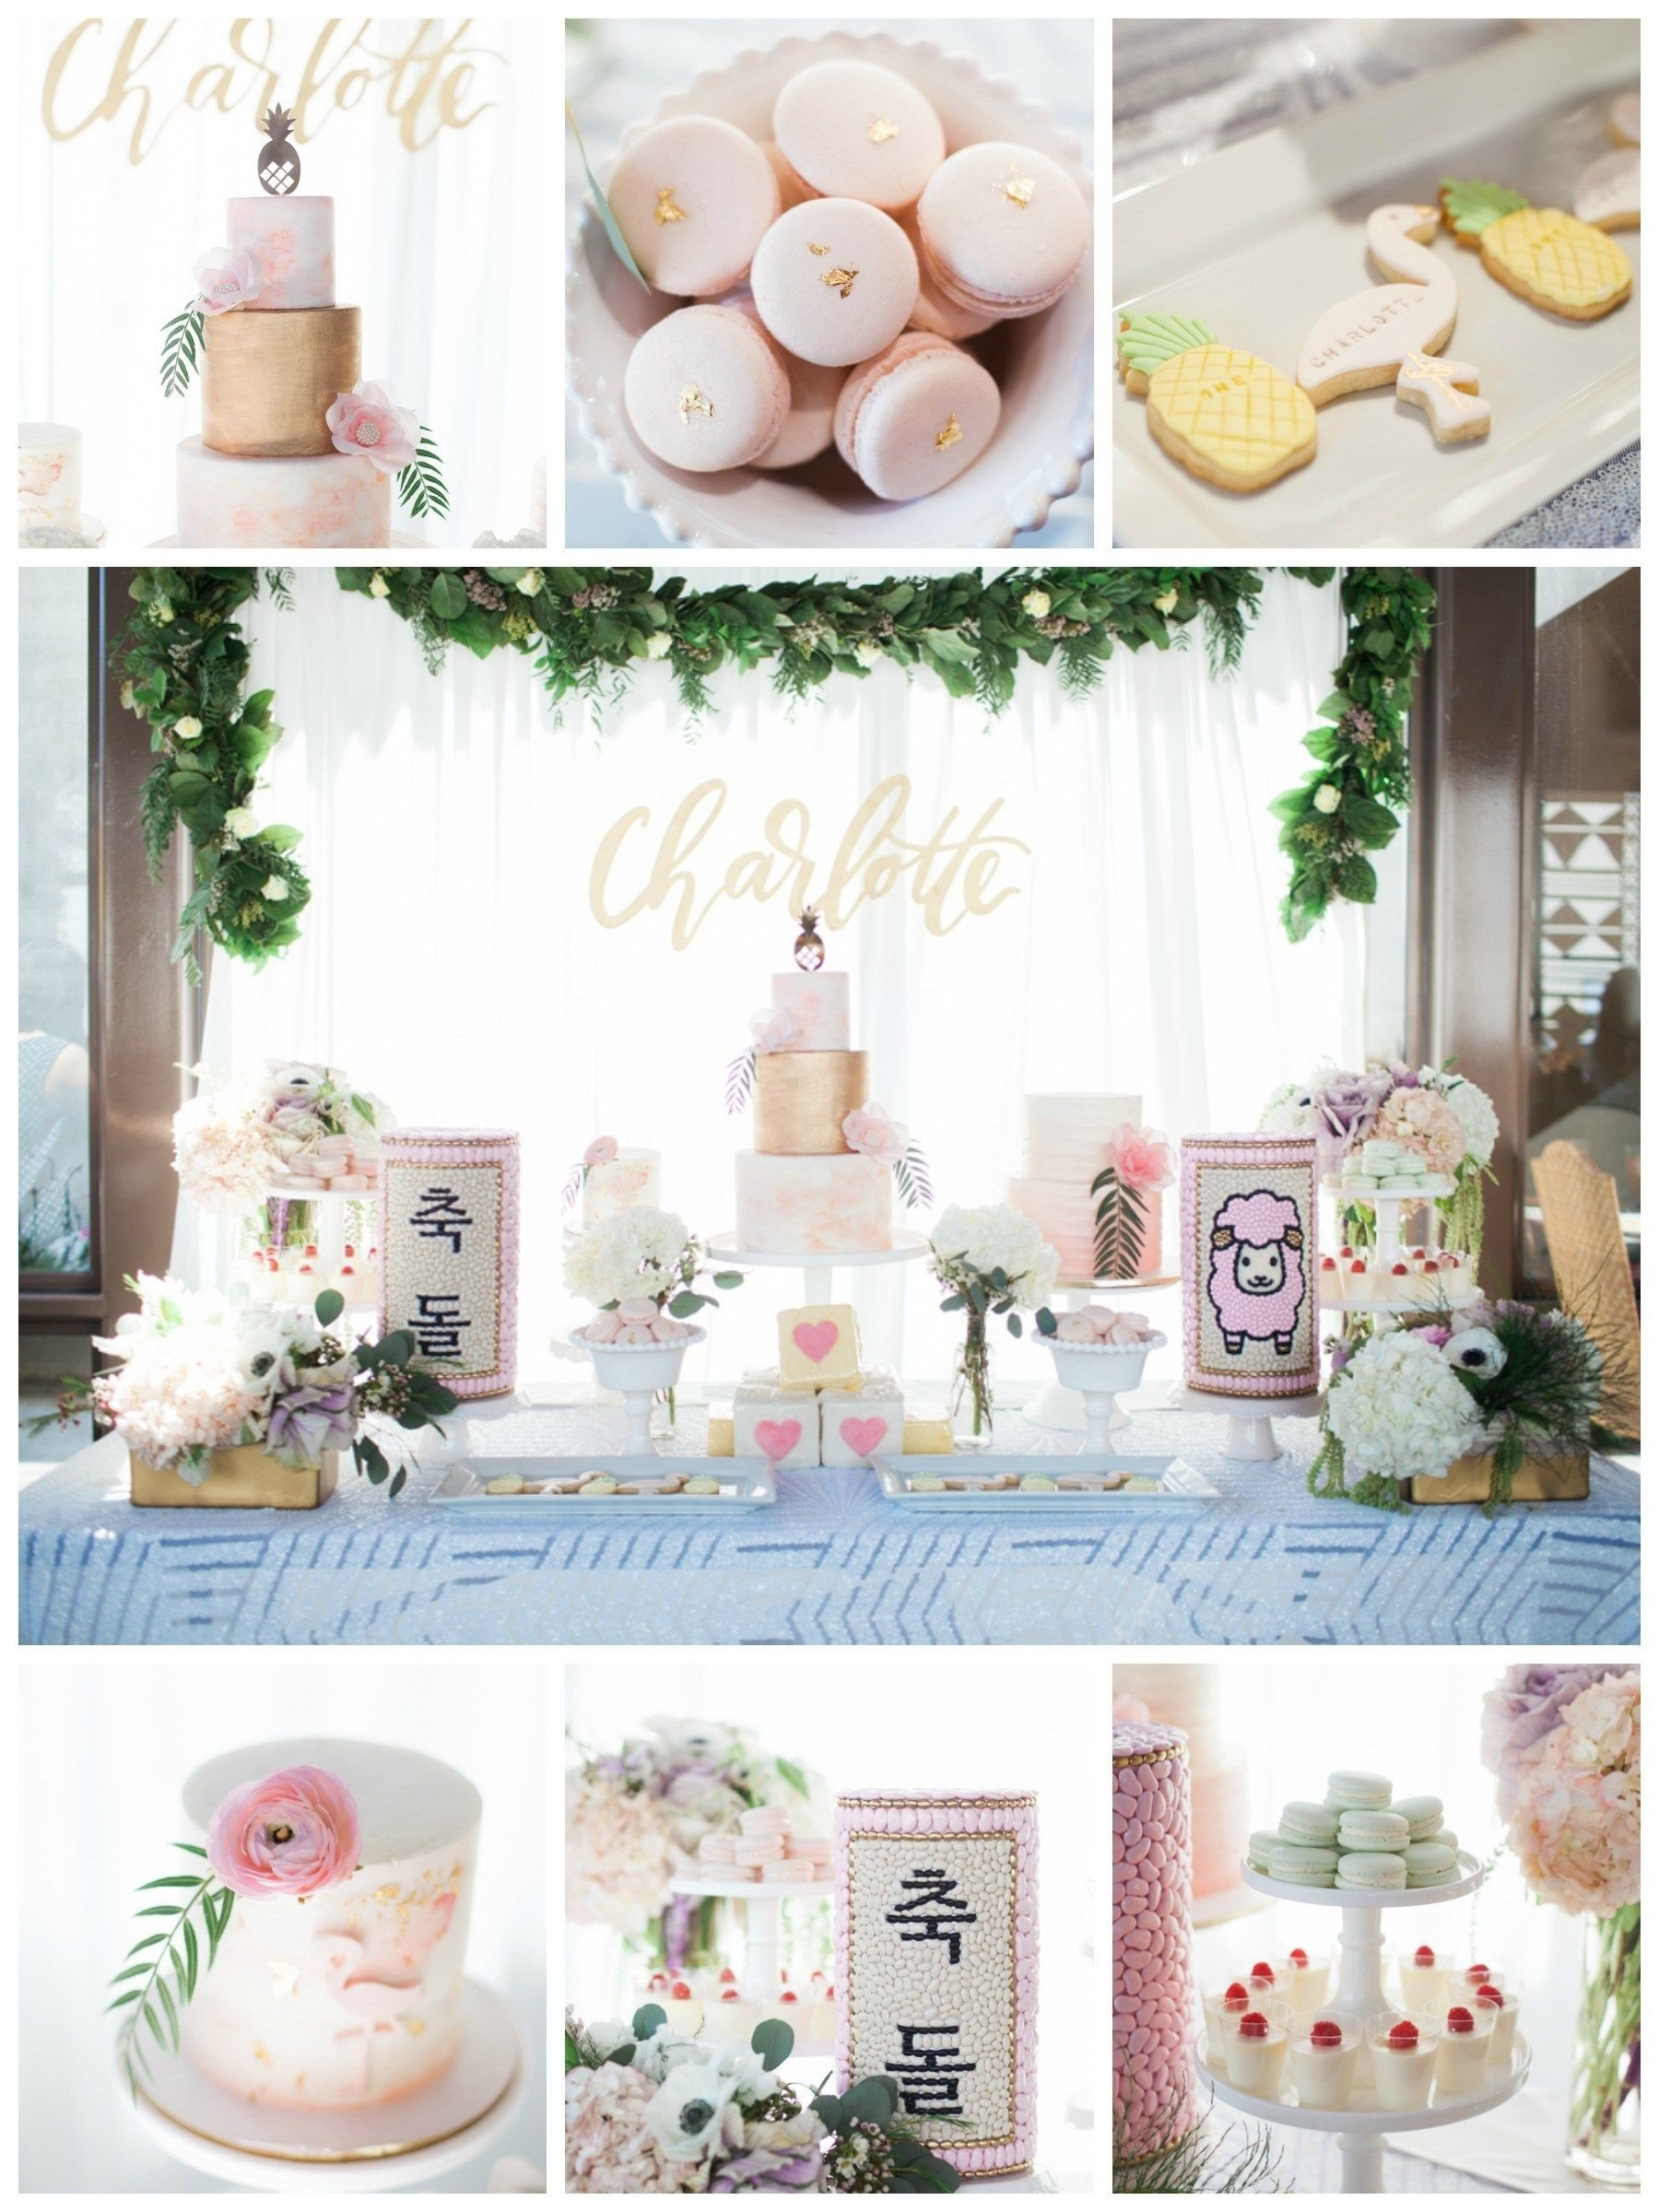 10 Beautiful Simple First Birthday Party Ideas first birthday party hawaiian theme pastel colors white pink gold 2021